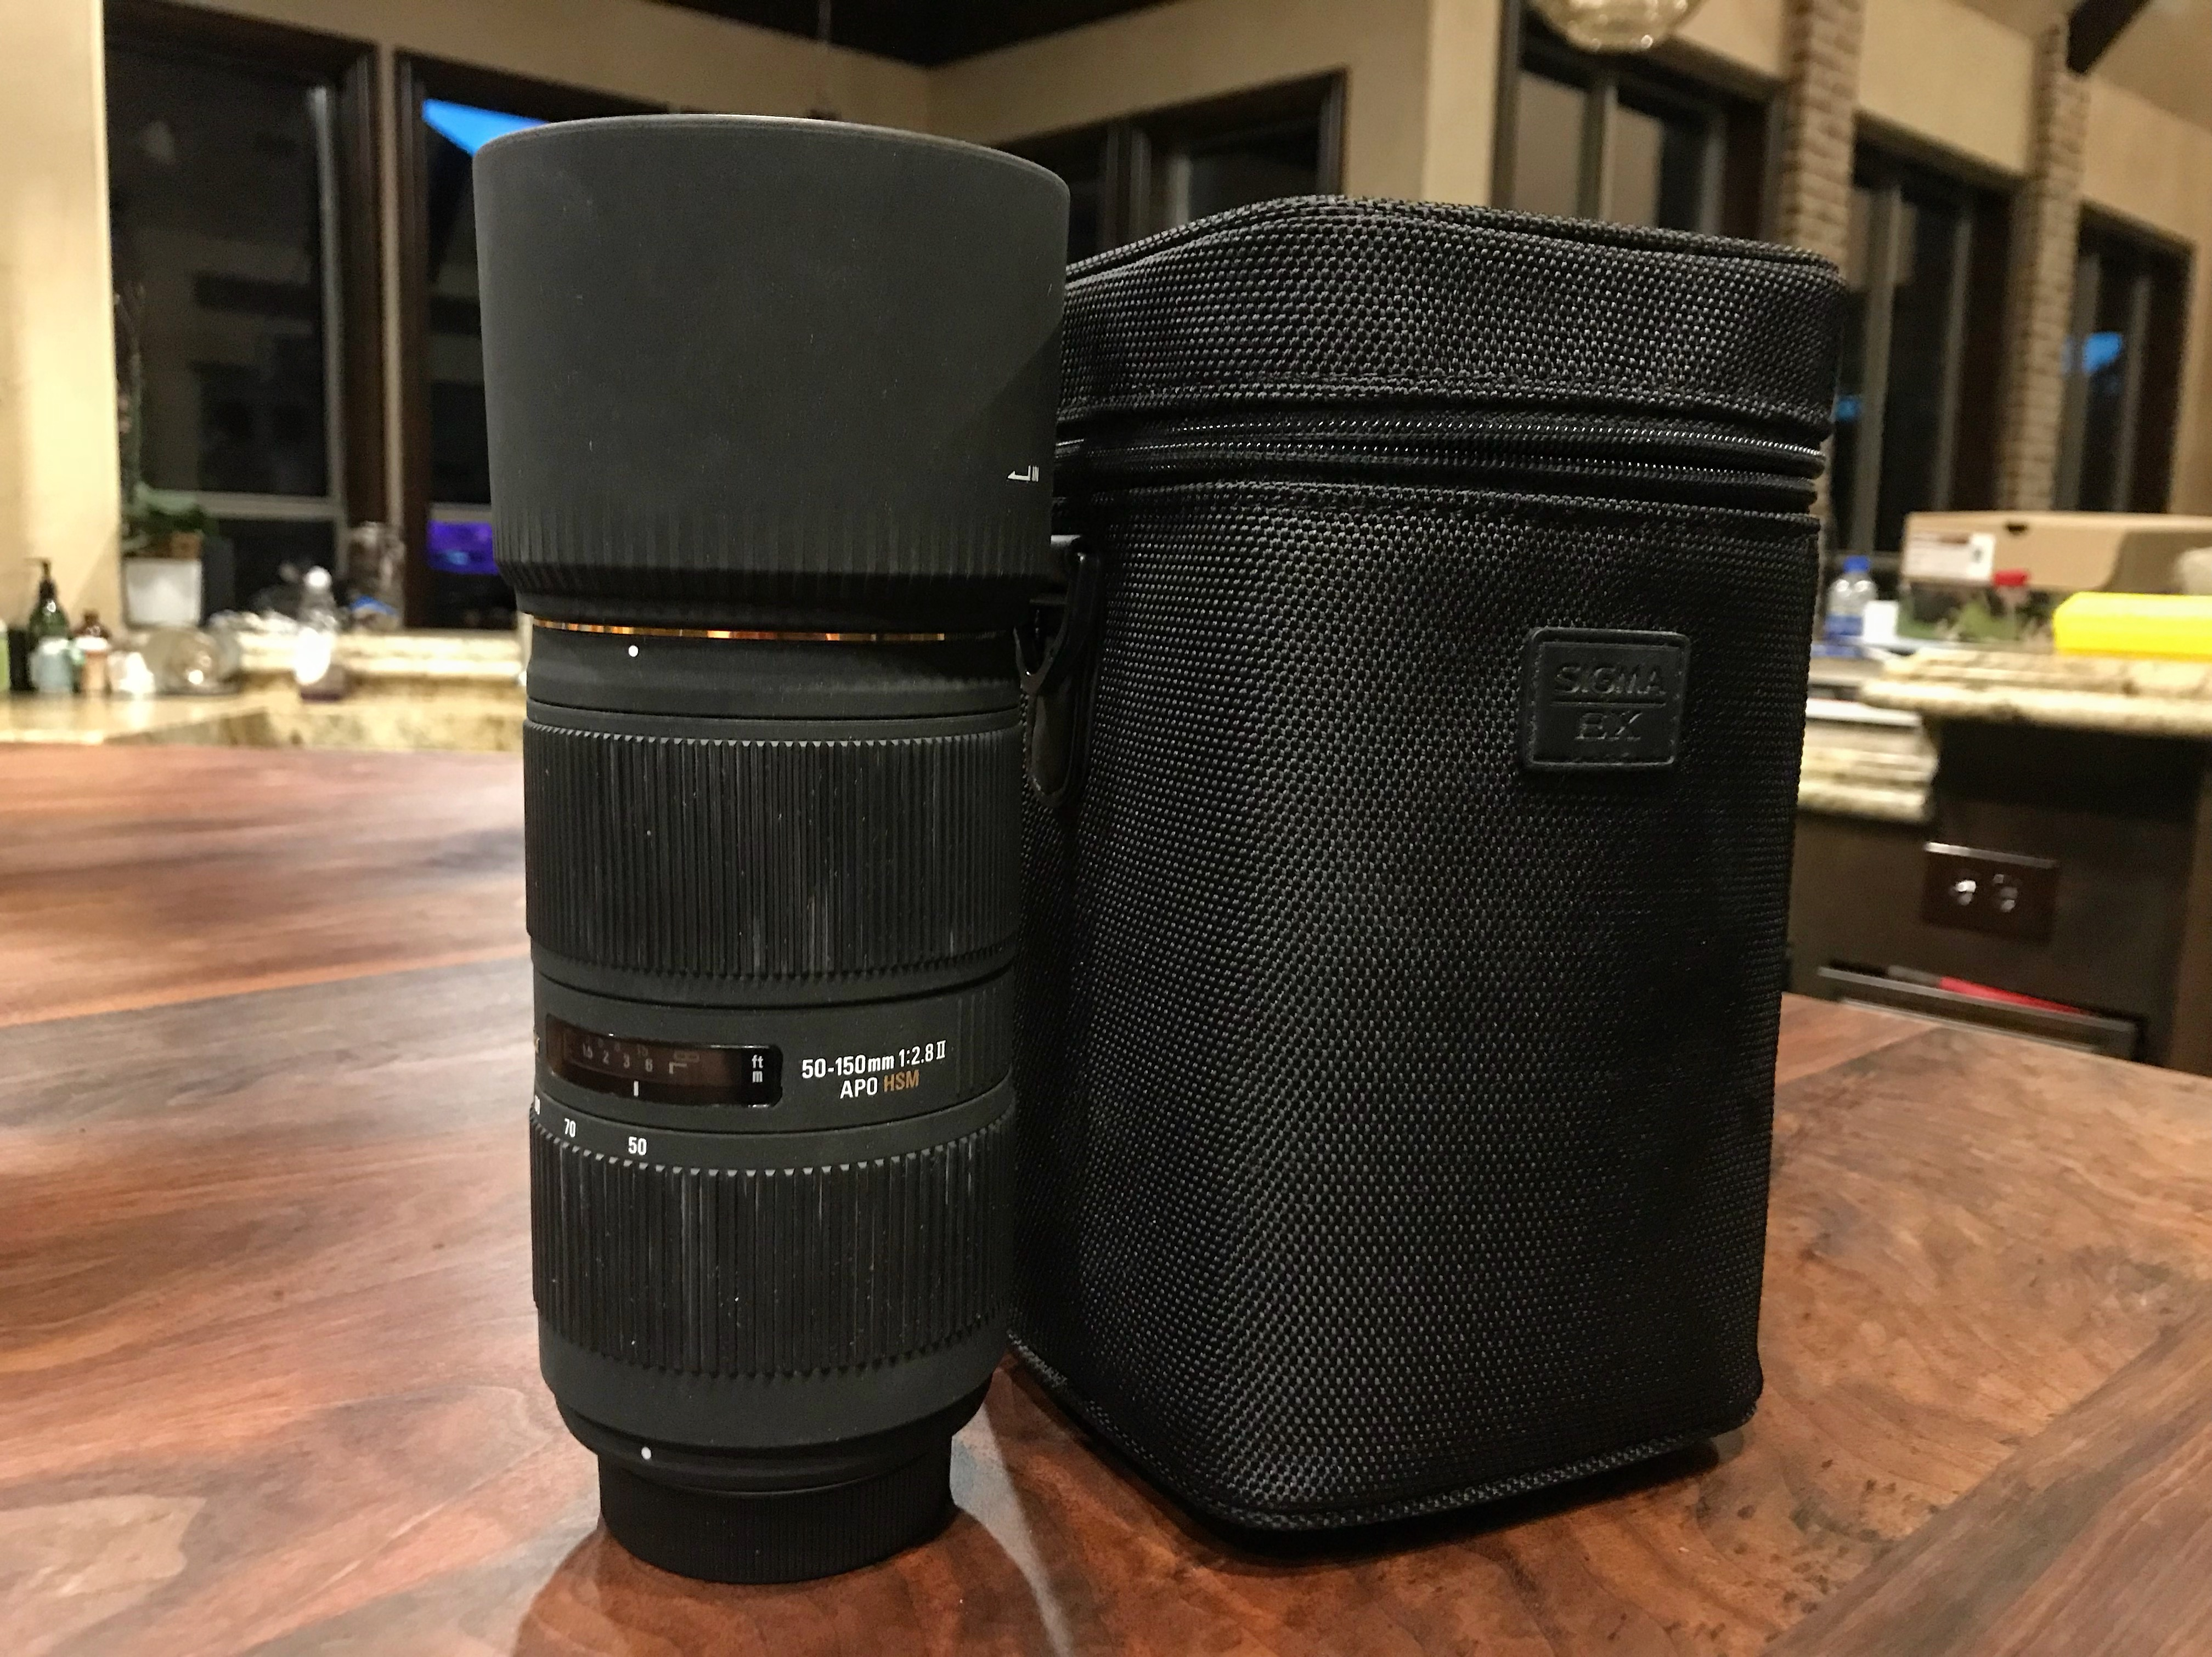 863dd48ed6de Sigma 50-150: worth it to send off for repair?: Third Party Lens ...